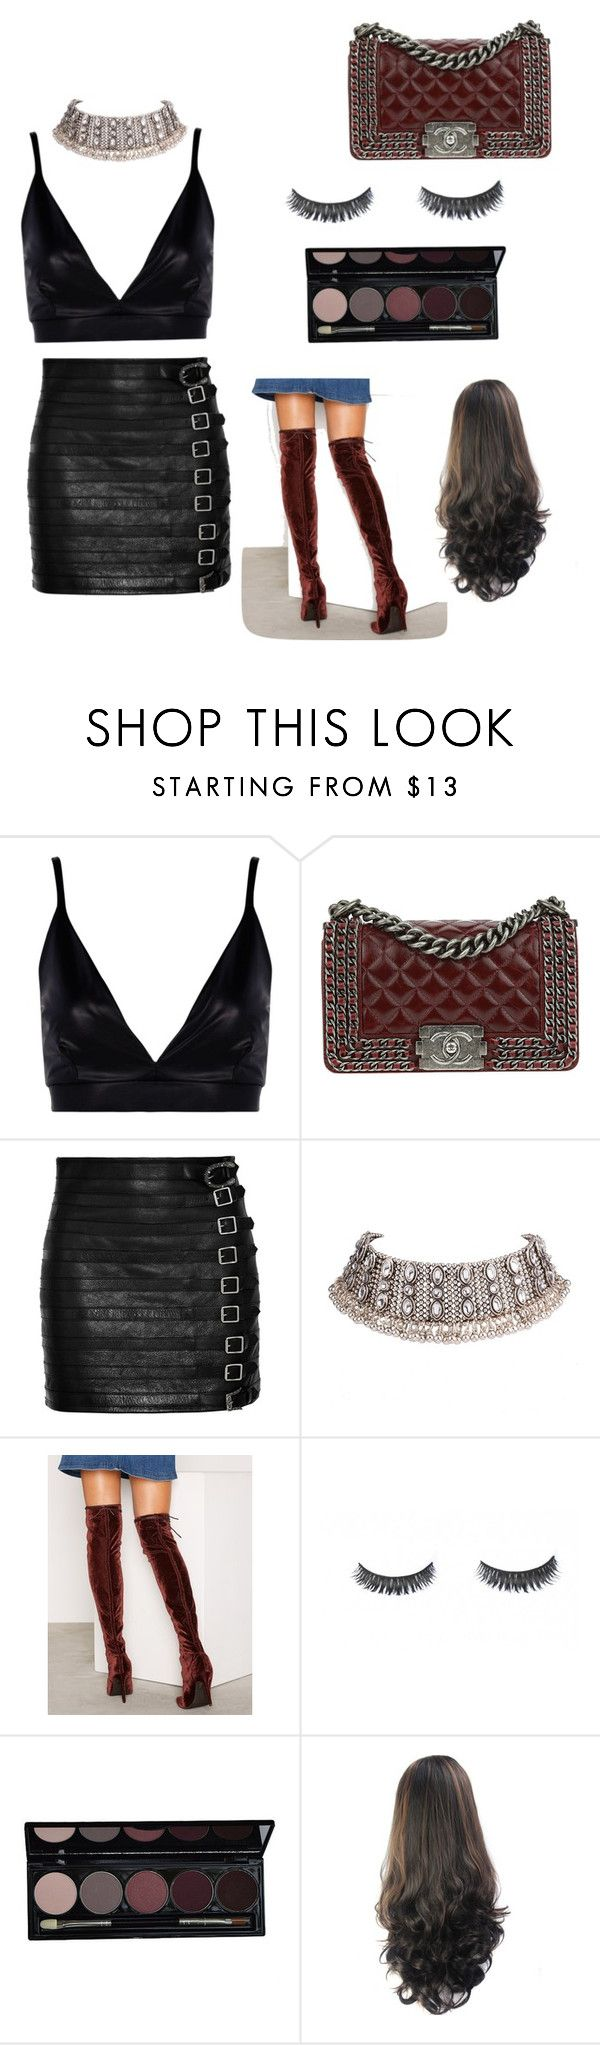 """""""Untitled #30"""" by kylie-cardinali on Polyvore featuring Boohoo, Chanel, Gucci and Nly Shoes"""